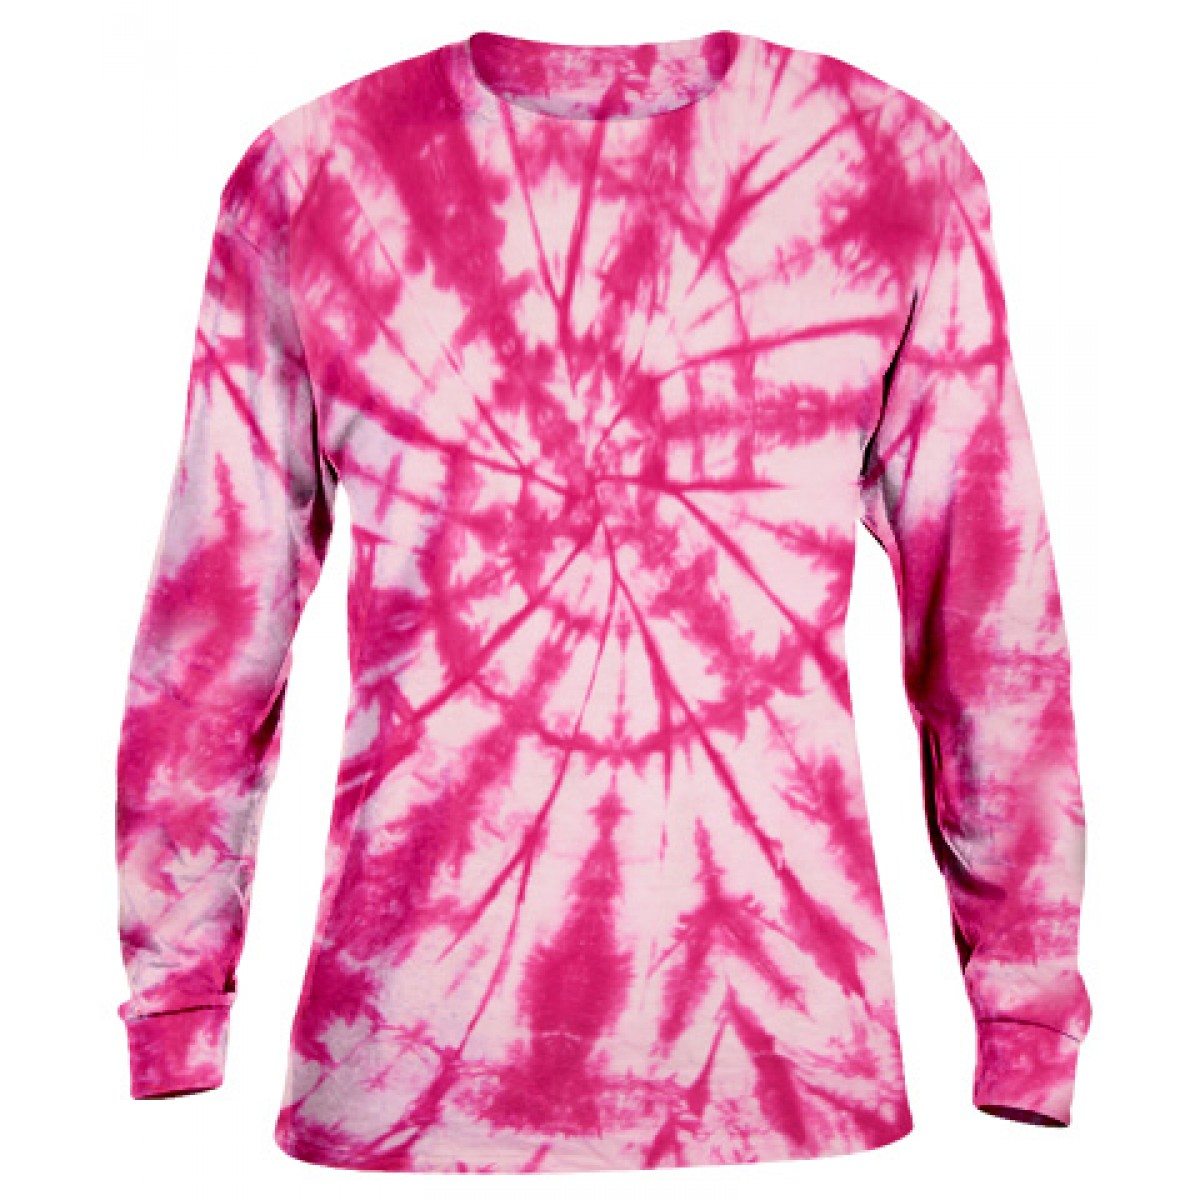 Tie-Dye Long Sleeve Shirt -Fuscia-XL